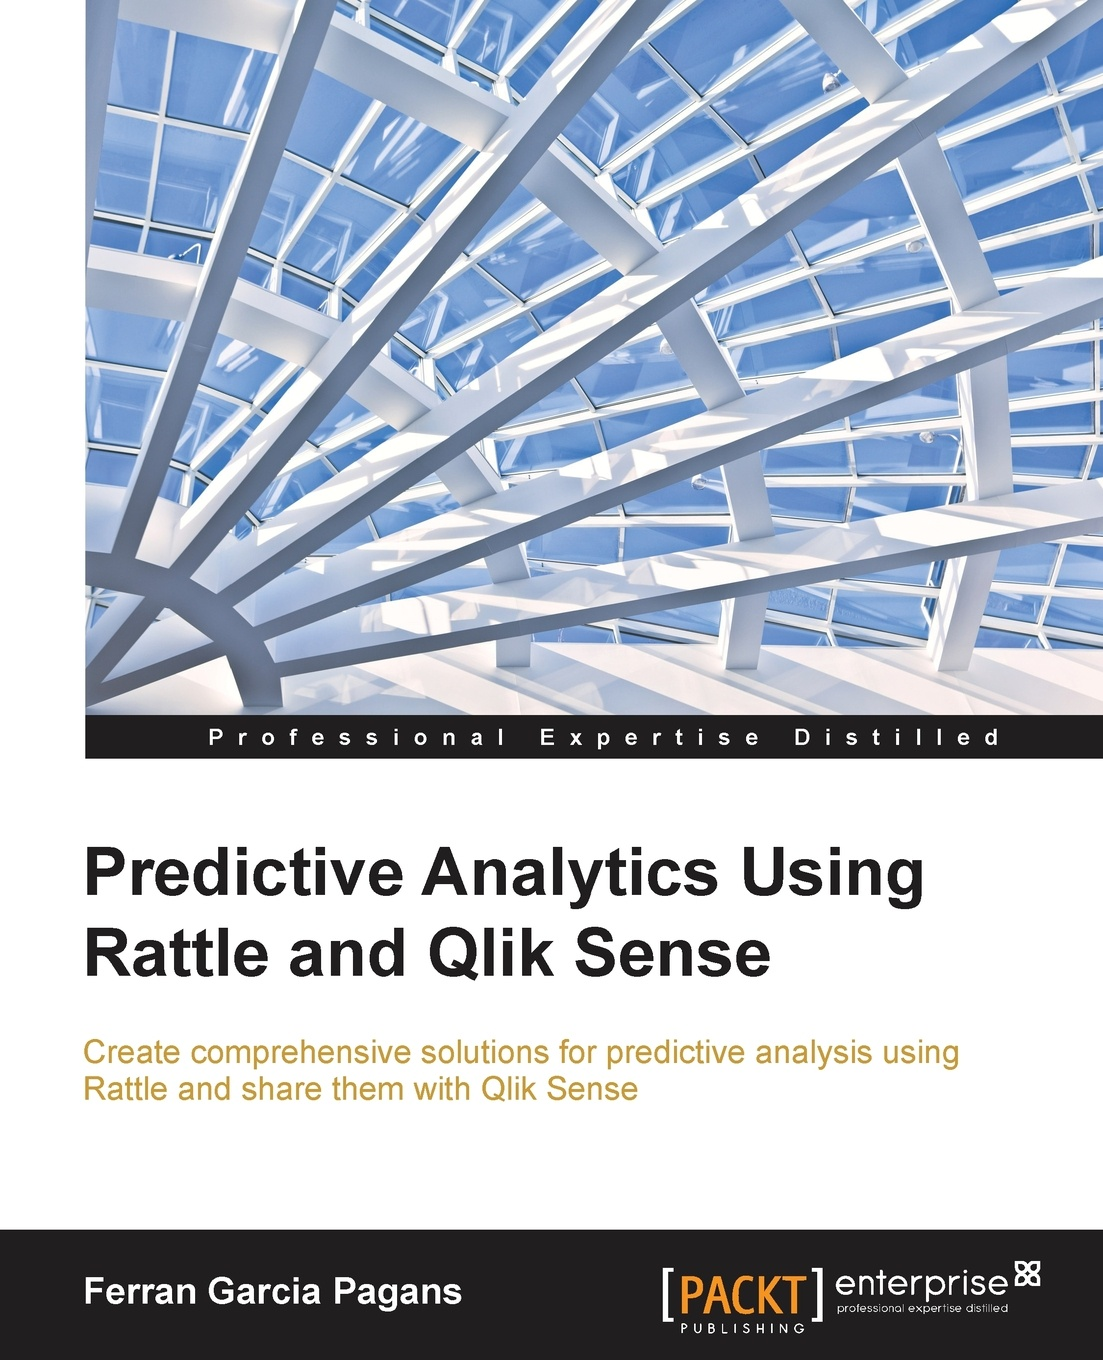 Ferran Garcia Pagans Predictive Analytics using Rattle and Qlik Sense